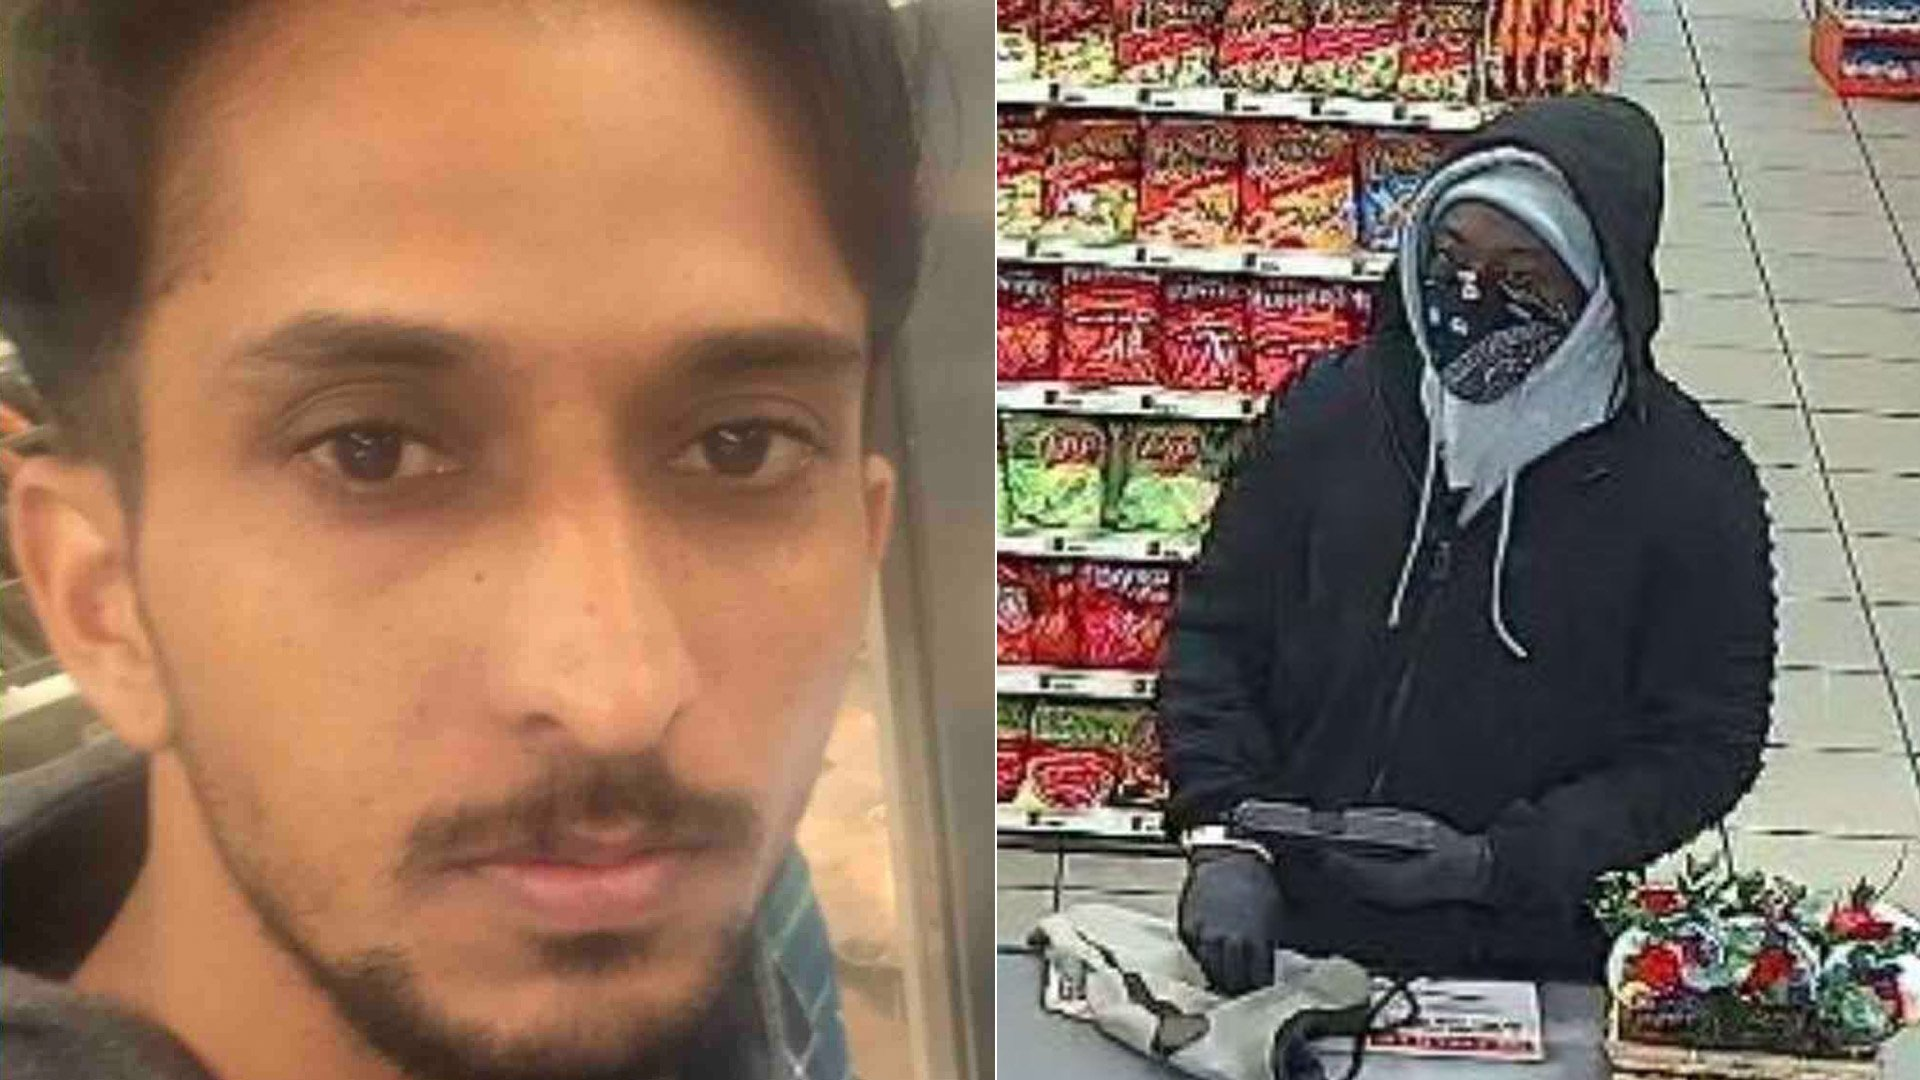 Maninder Singh Sahi, left, was killed by a robber, right, at a 7-Eleven in Whittier on Feb. 23, 2020. (Credit: GoFundMe and Whittier Police Department)